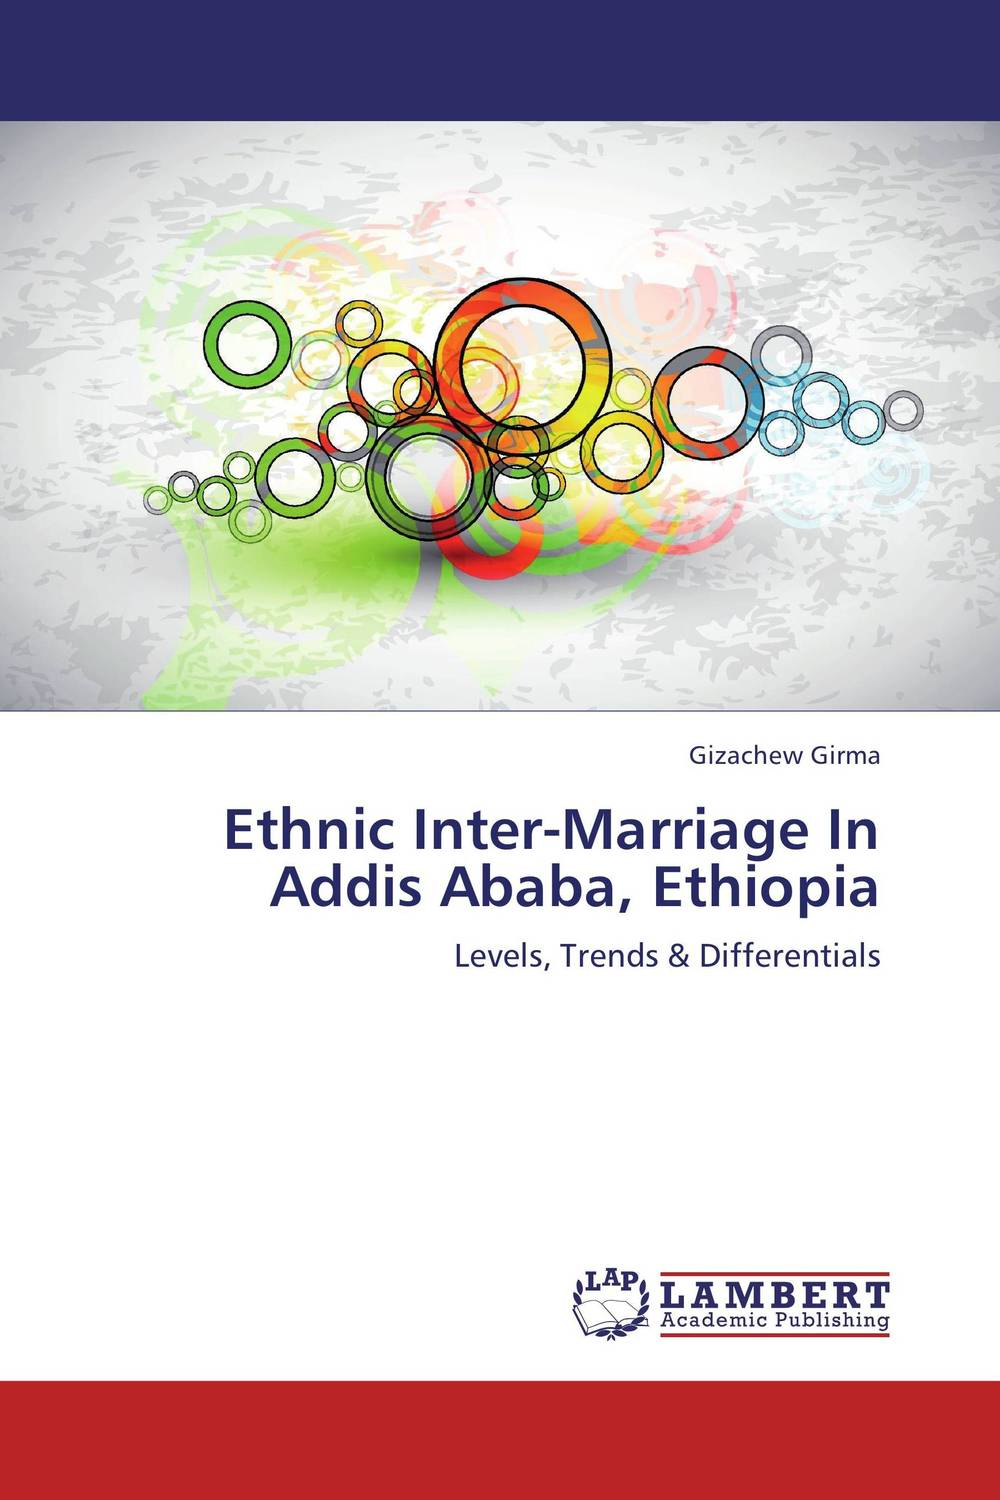 Ethnic Inter-Marriage In Addis Ababa, Ethiopia